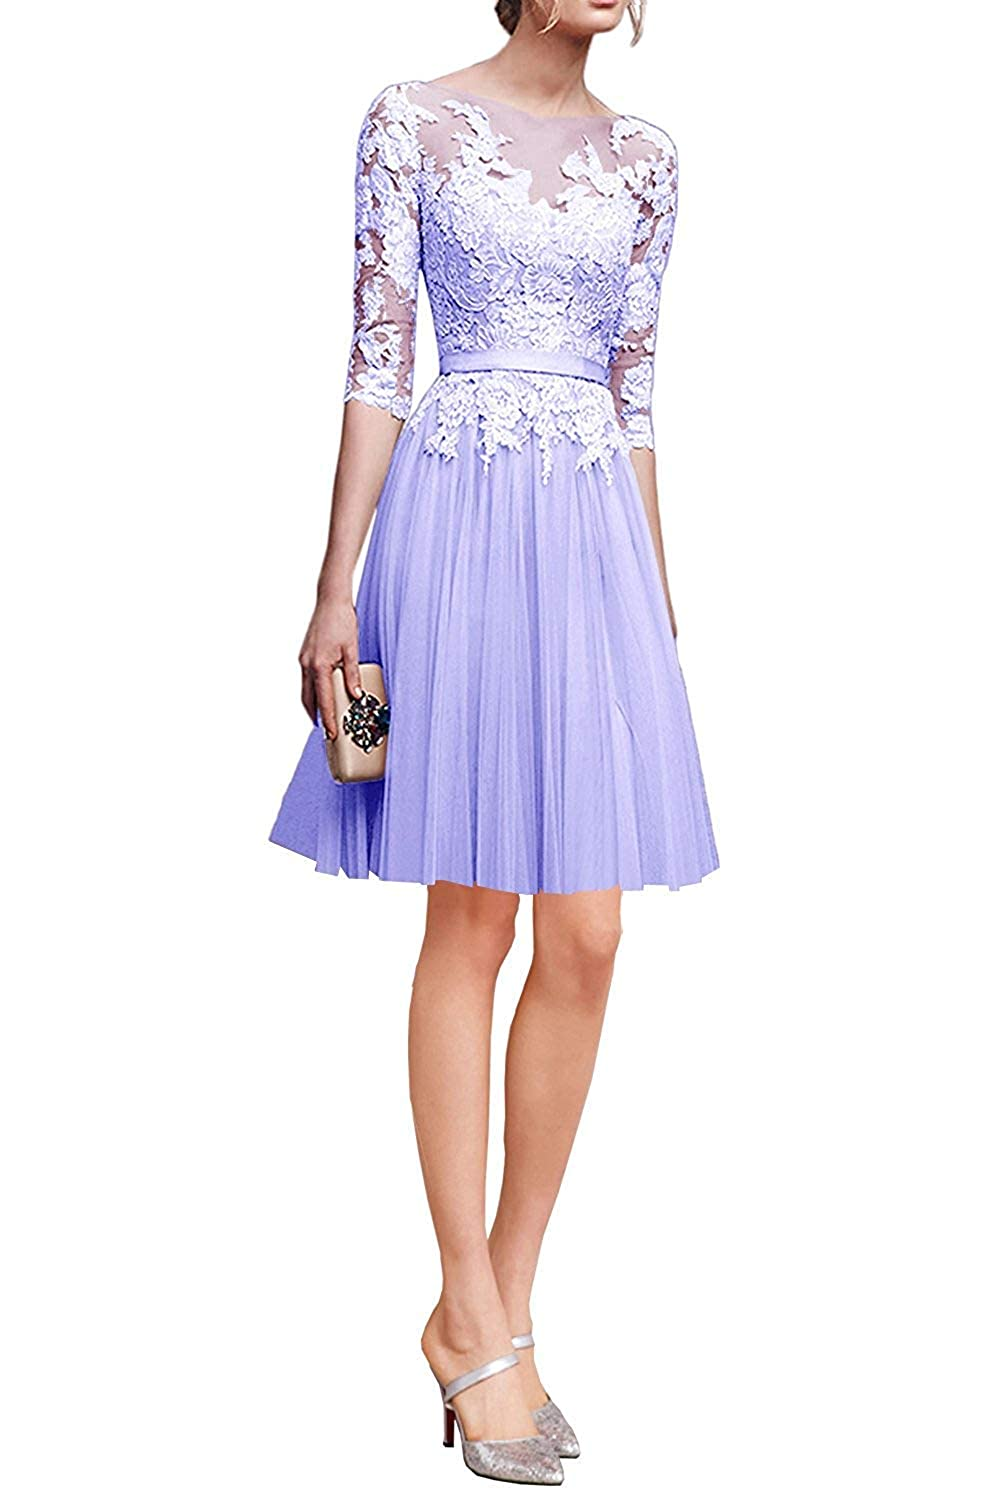 Lavender ZLQQ Woman's Half Sleeves Tulle Short Bridesmaid Dresses Lace Tea Length Evening Gowns